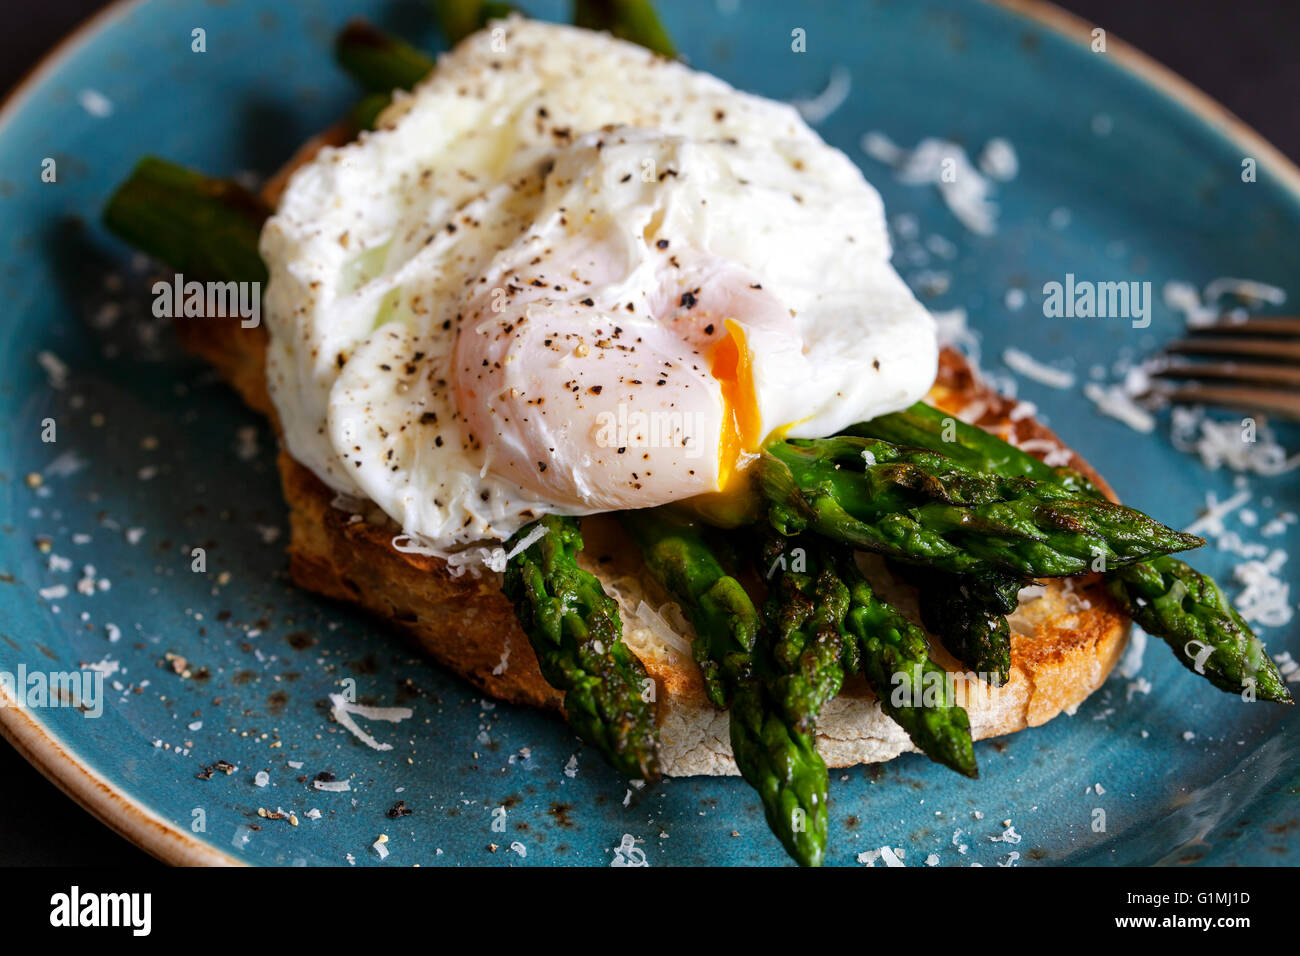 Toasted sourdough bread with grilled asparagus, poached egg and parmesan - Stock Image